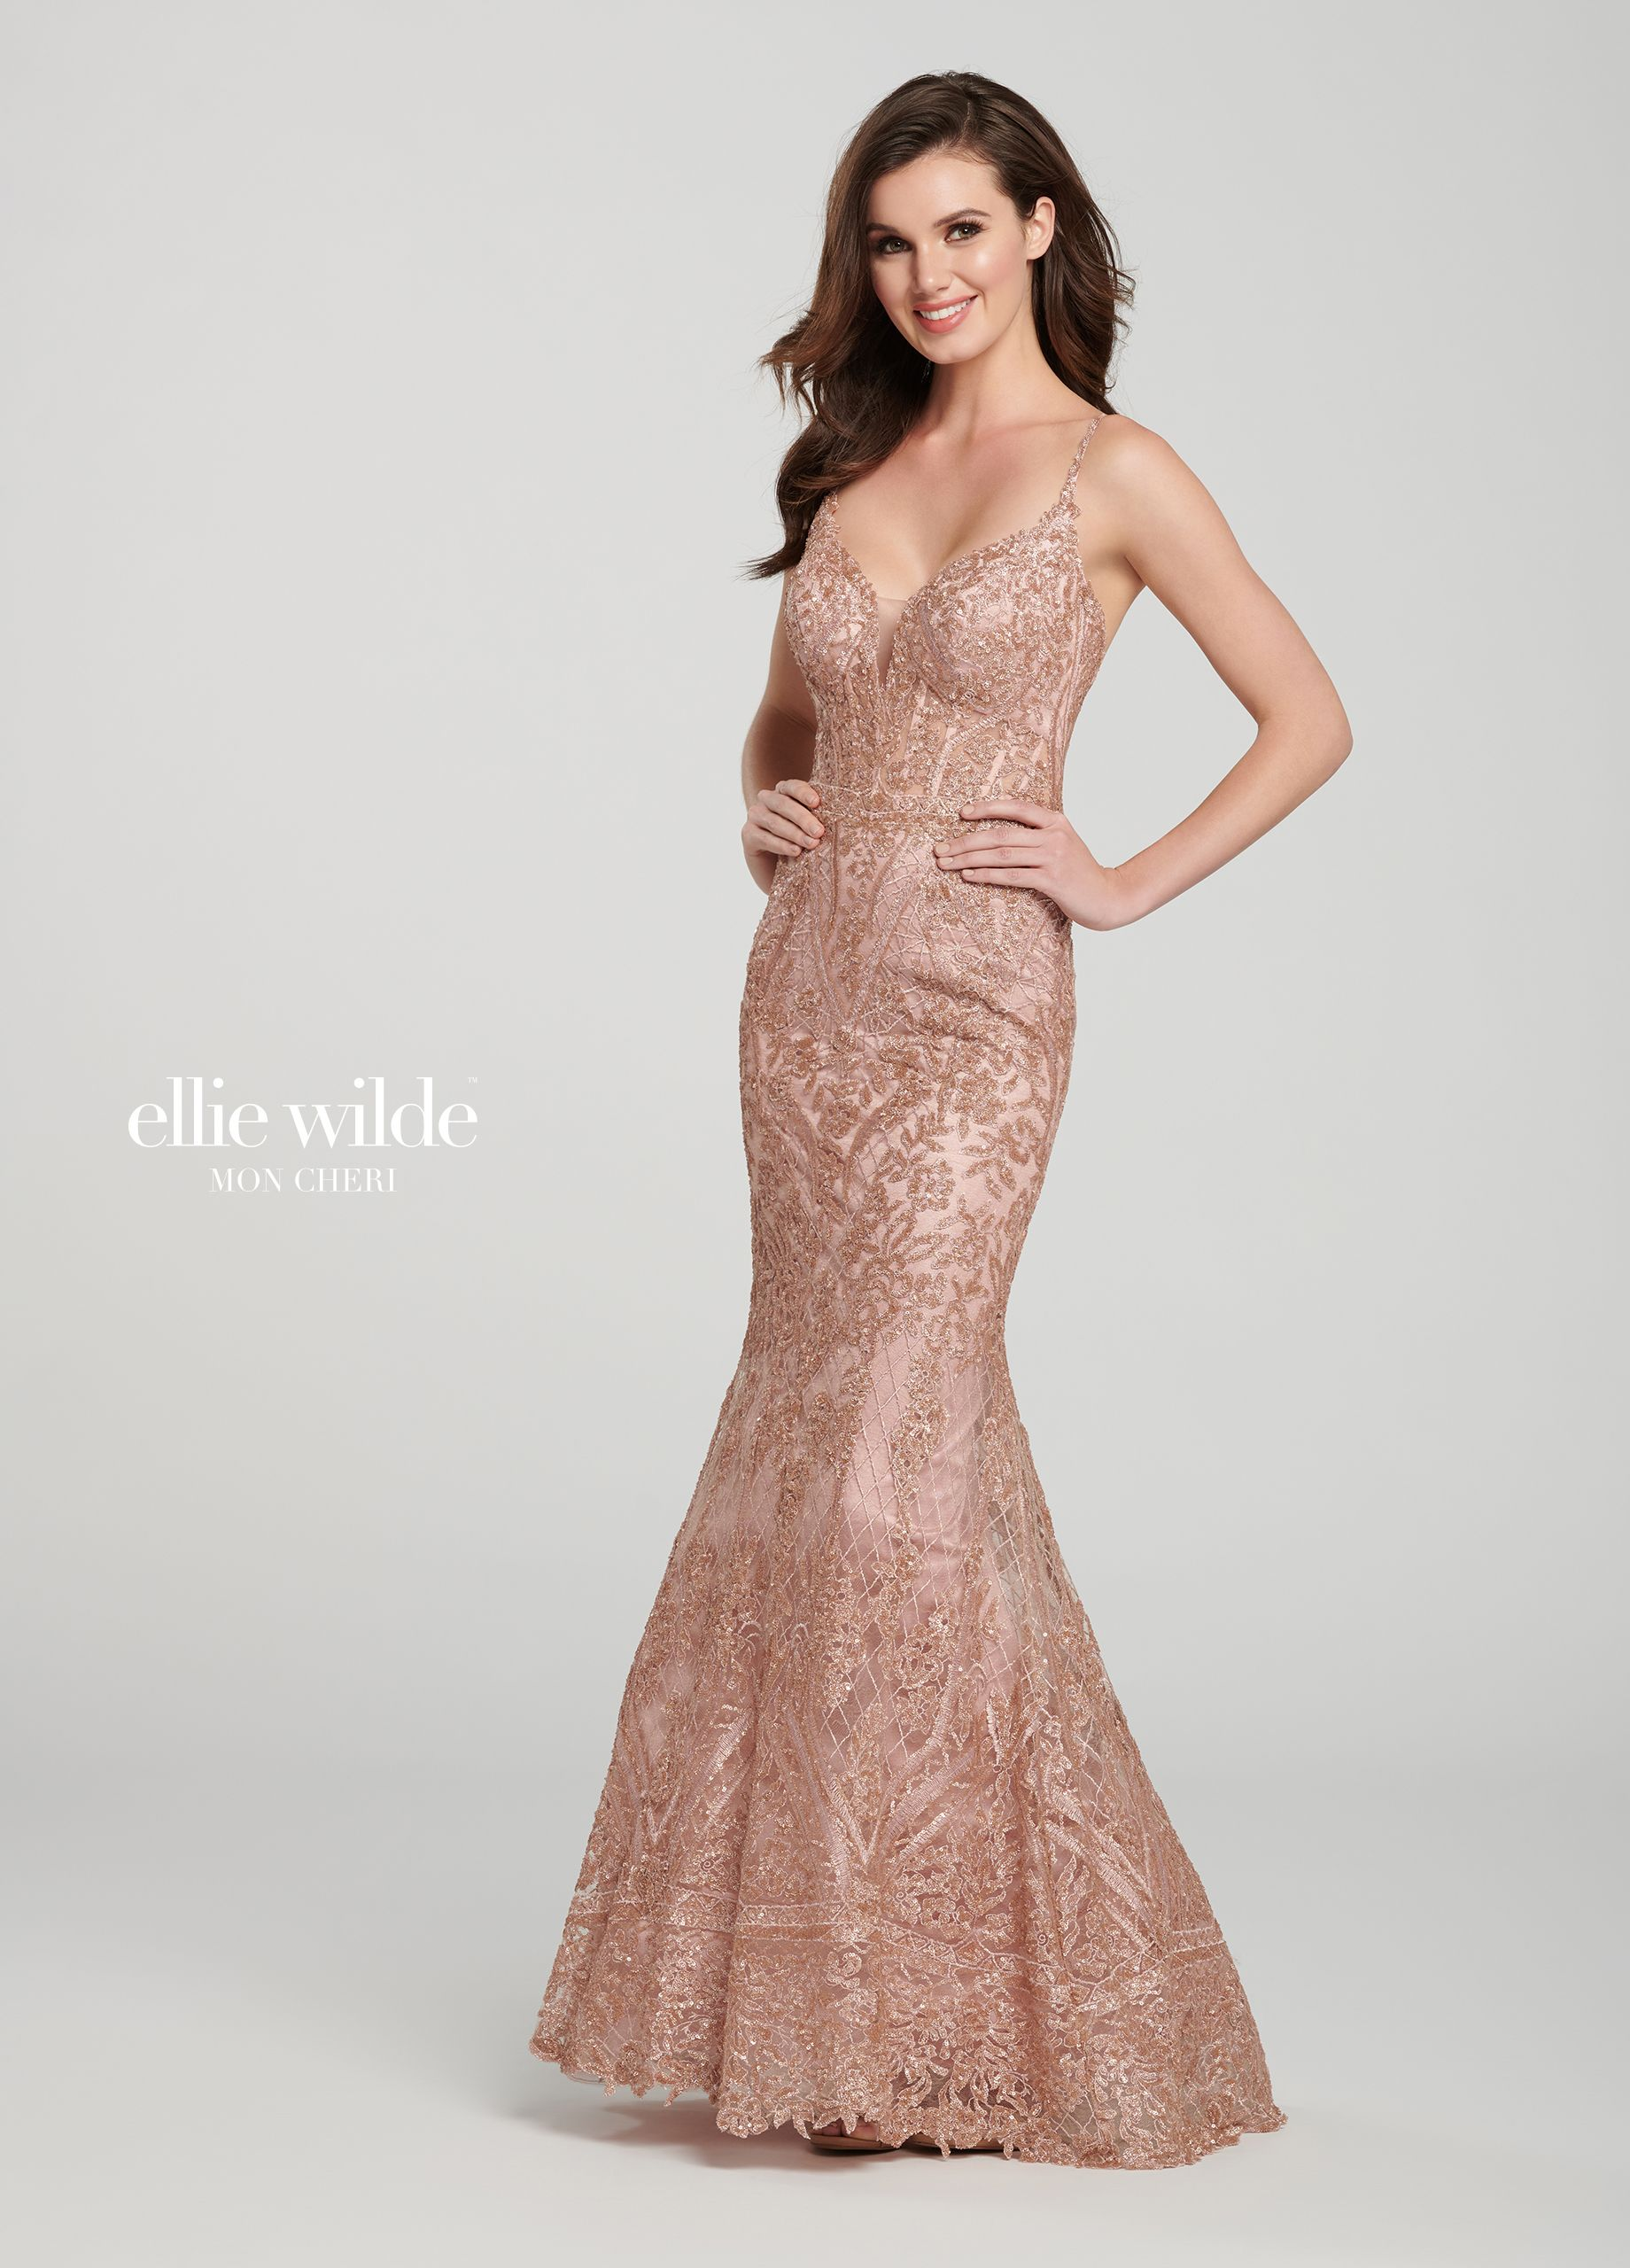 66cf4d4b Ellie Wilde EW119088 - Sleeveless fit and flare sequin embroidered gown  features a deep plunging sweetheart neckline with an illusion panel, ...